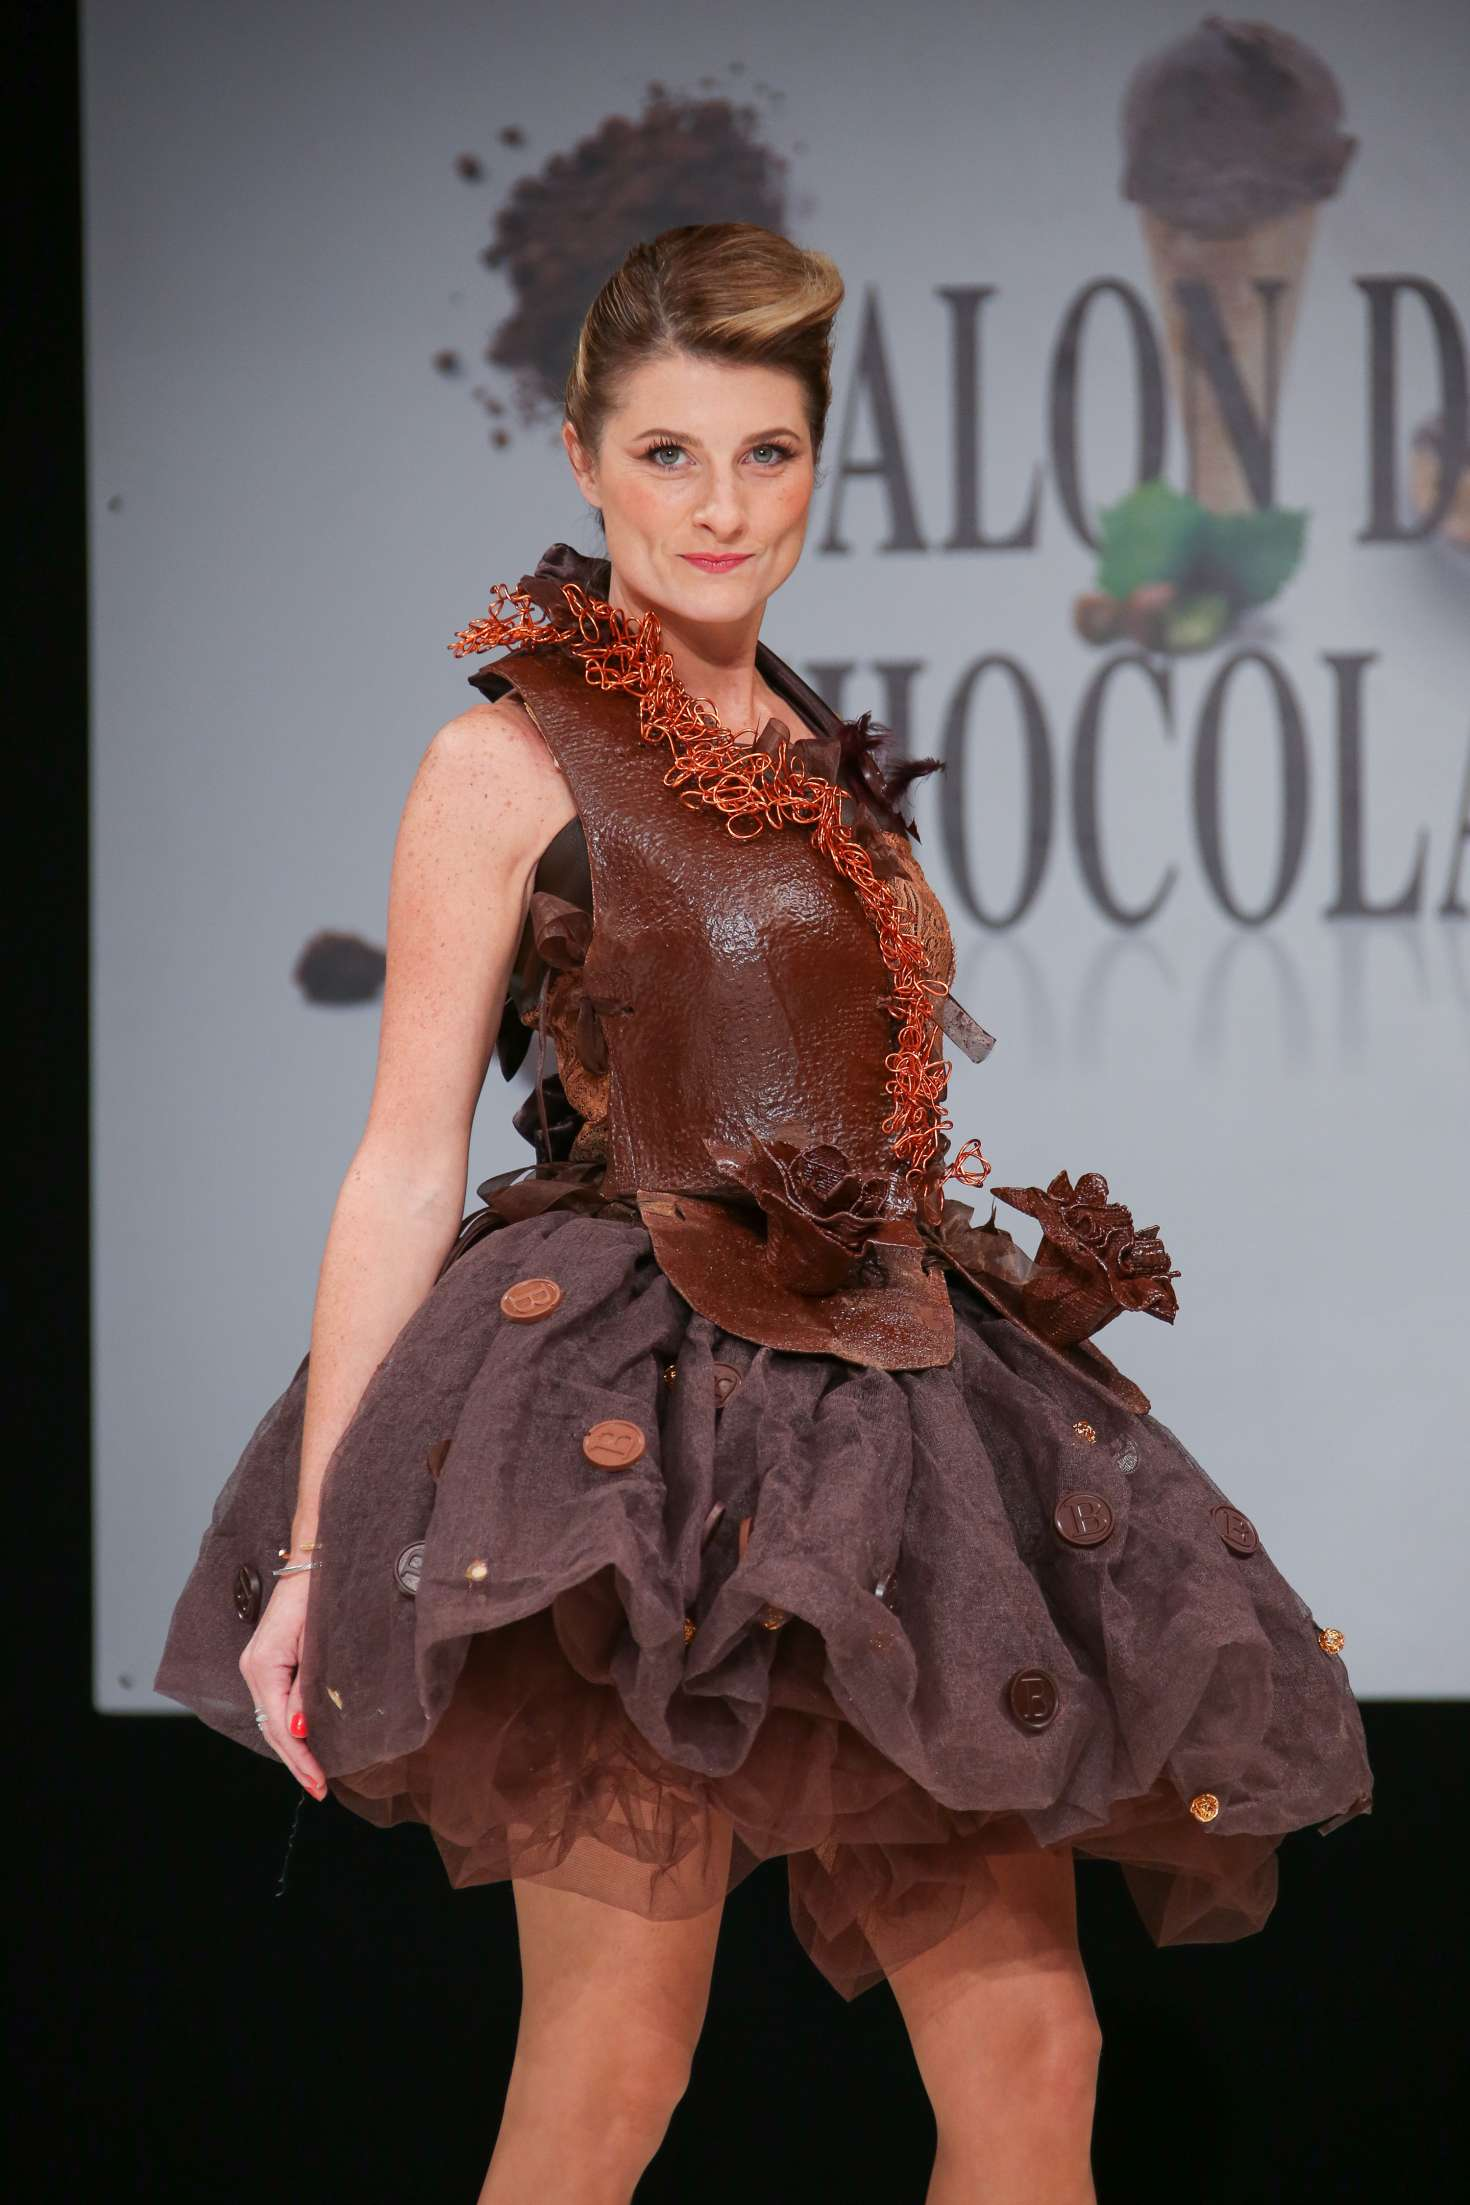 Sandrine arcizet 39 salon du chocolat paris 2017 for Salon du the